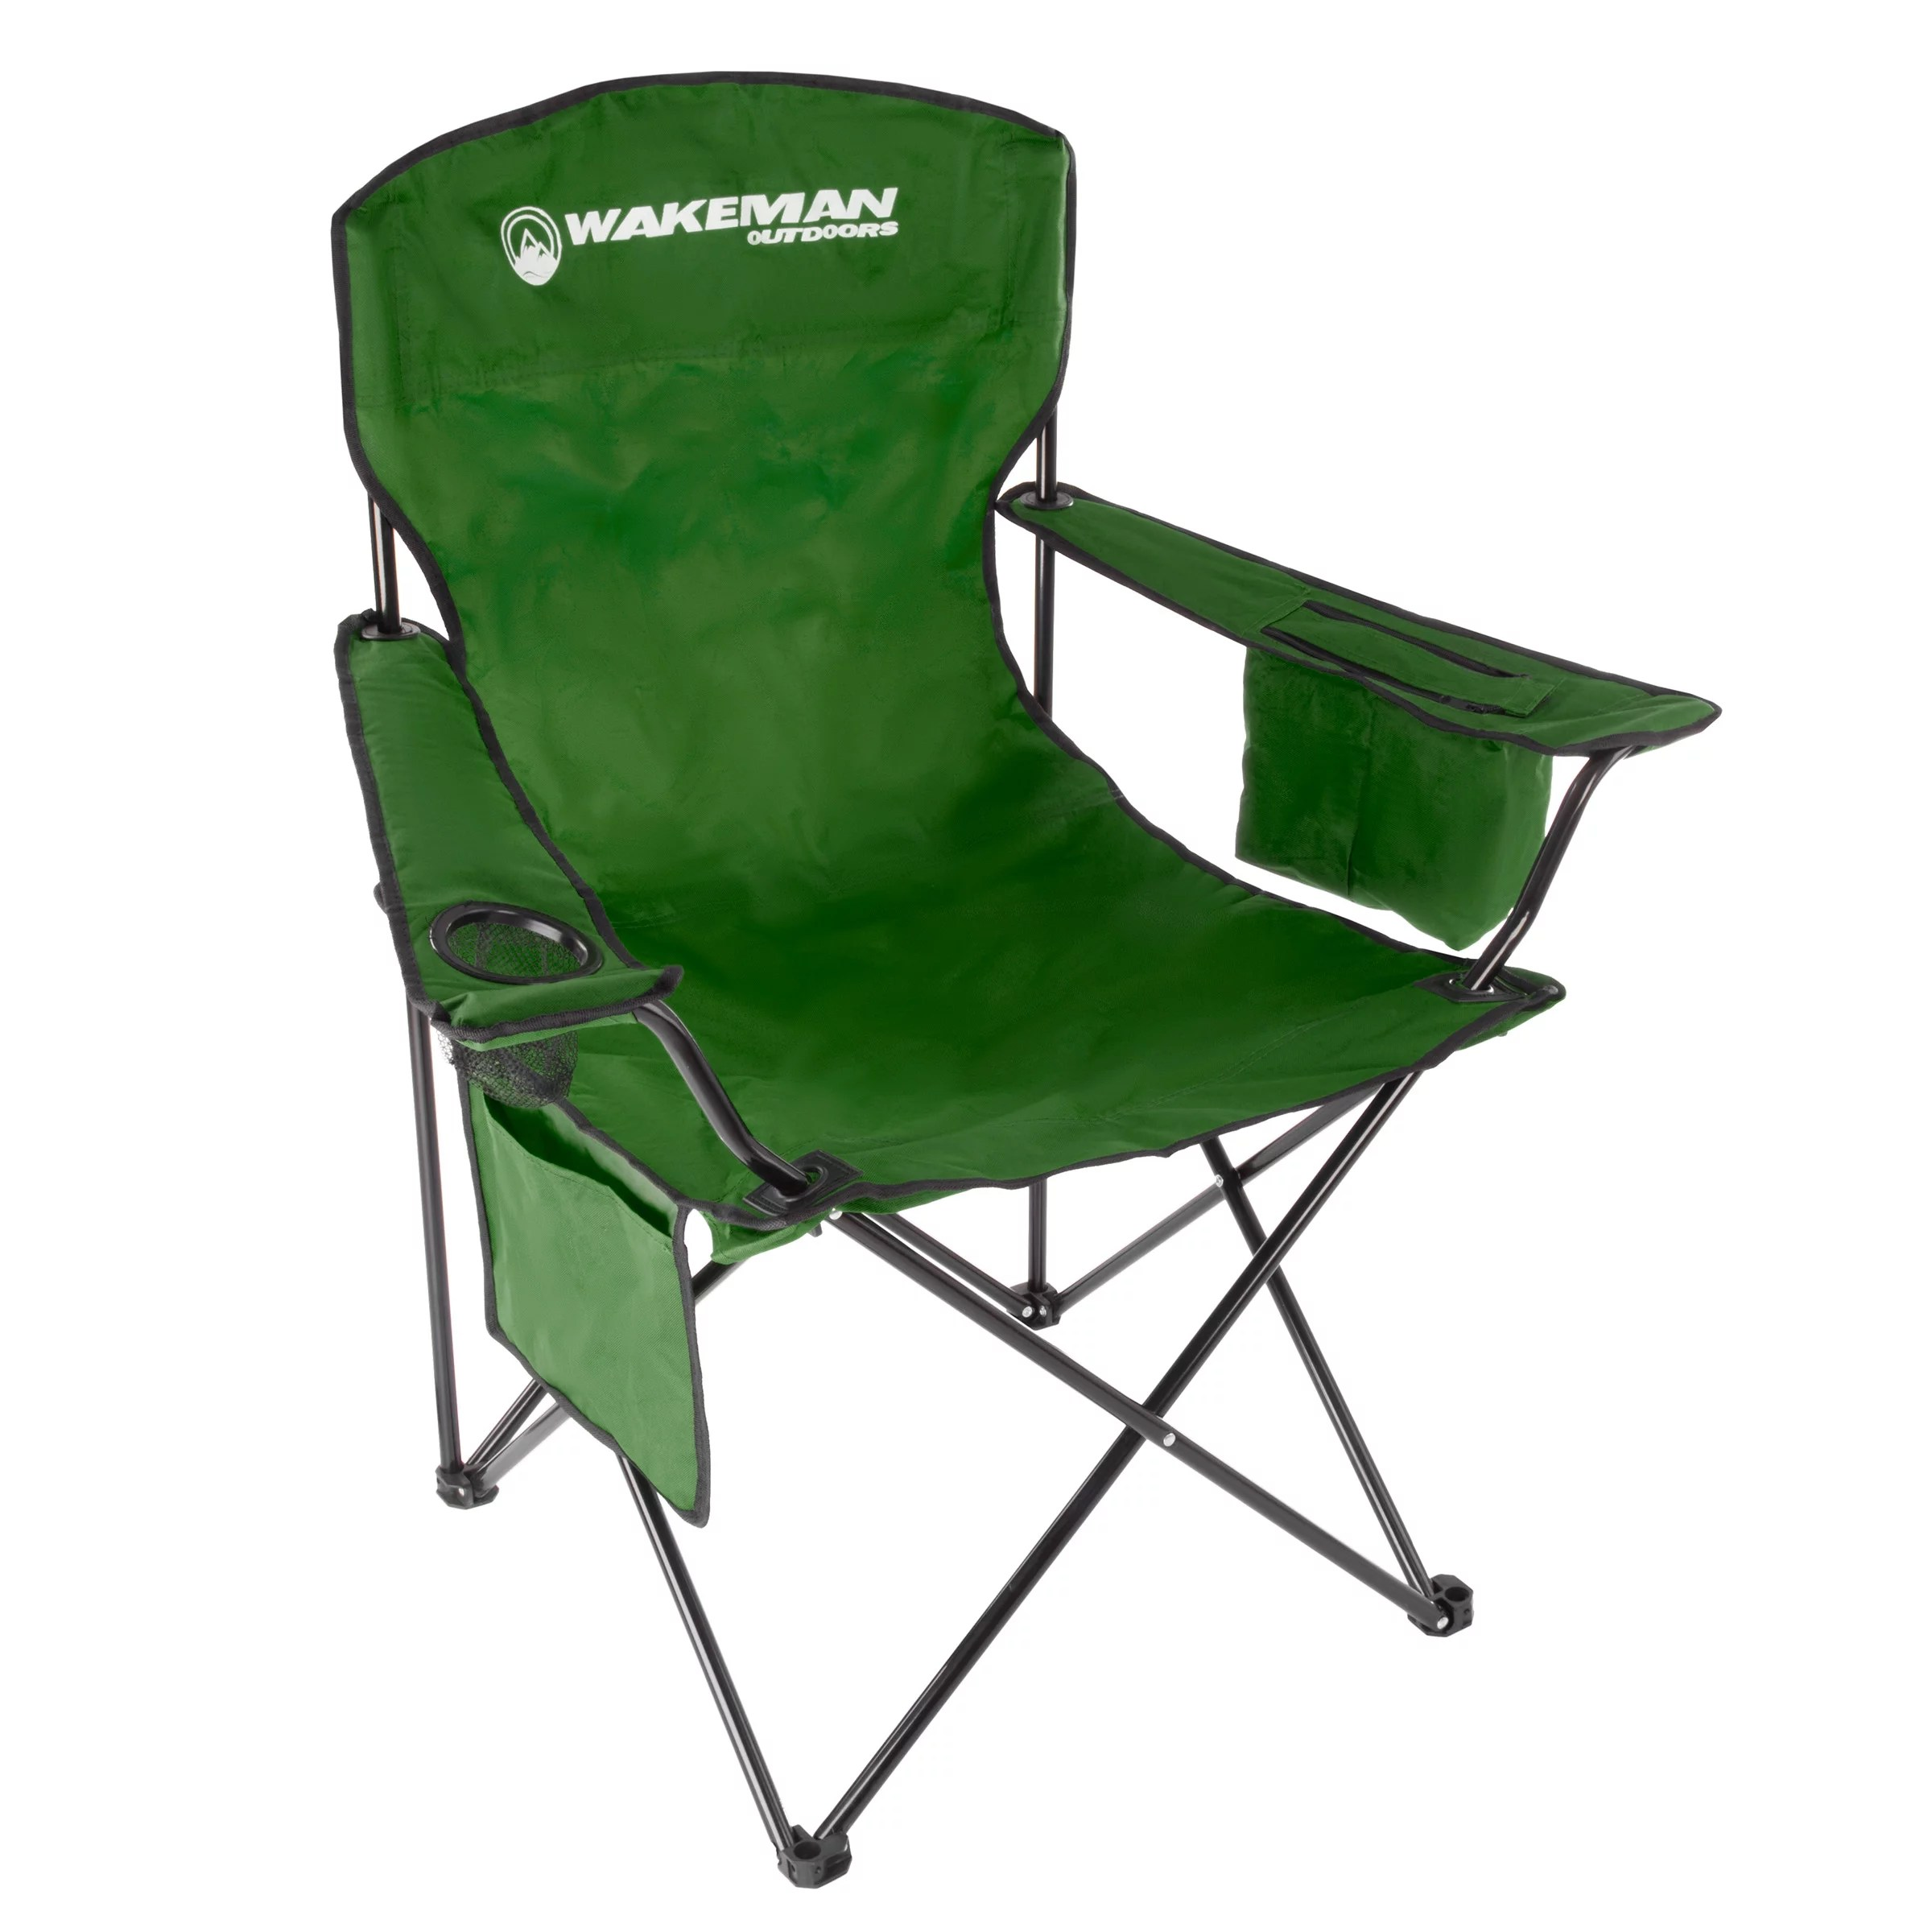 tall fishing chair coleman oversized quad camp 300lb capacity big seat with cup holder cooler carry bag tailgating camping by wakeman outdoors walmart com